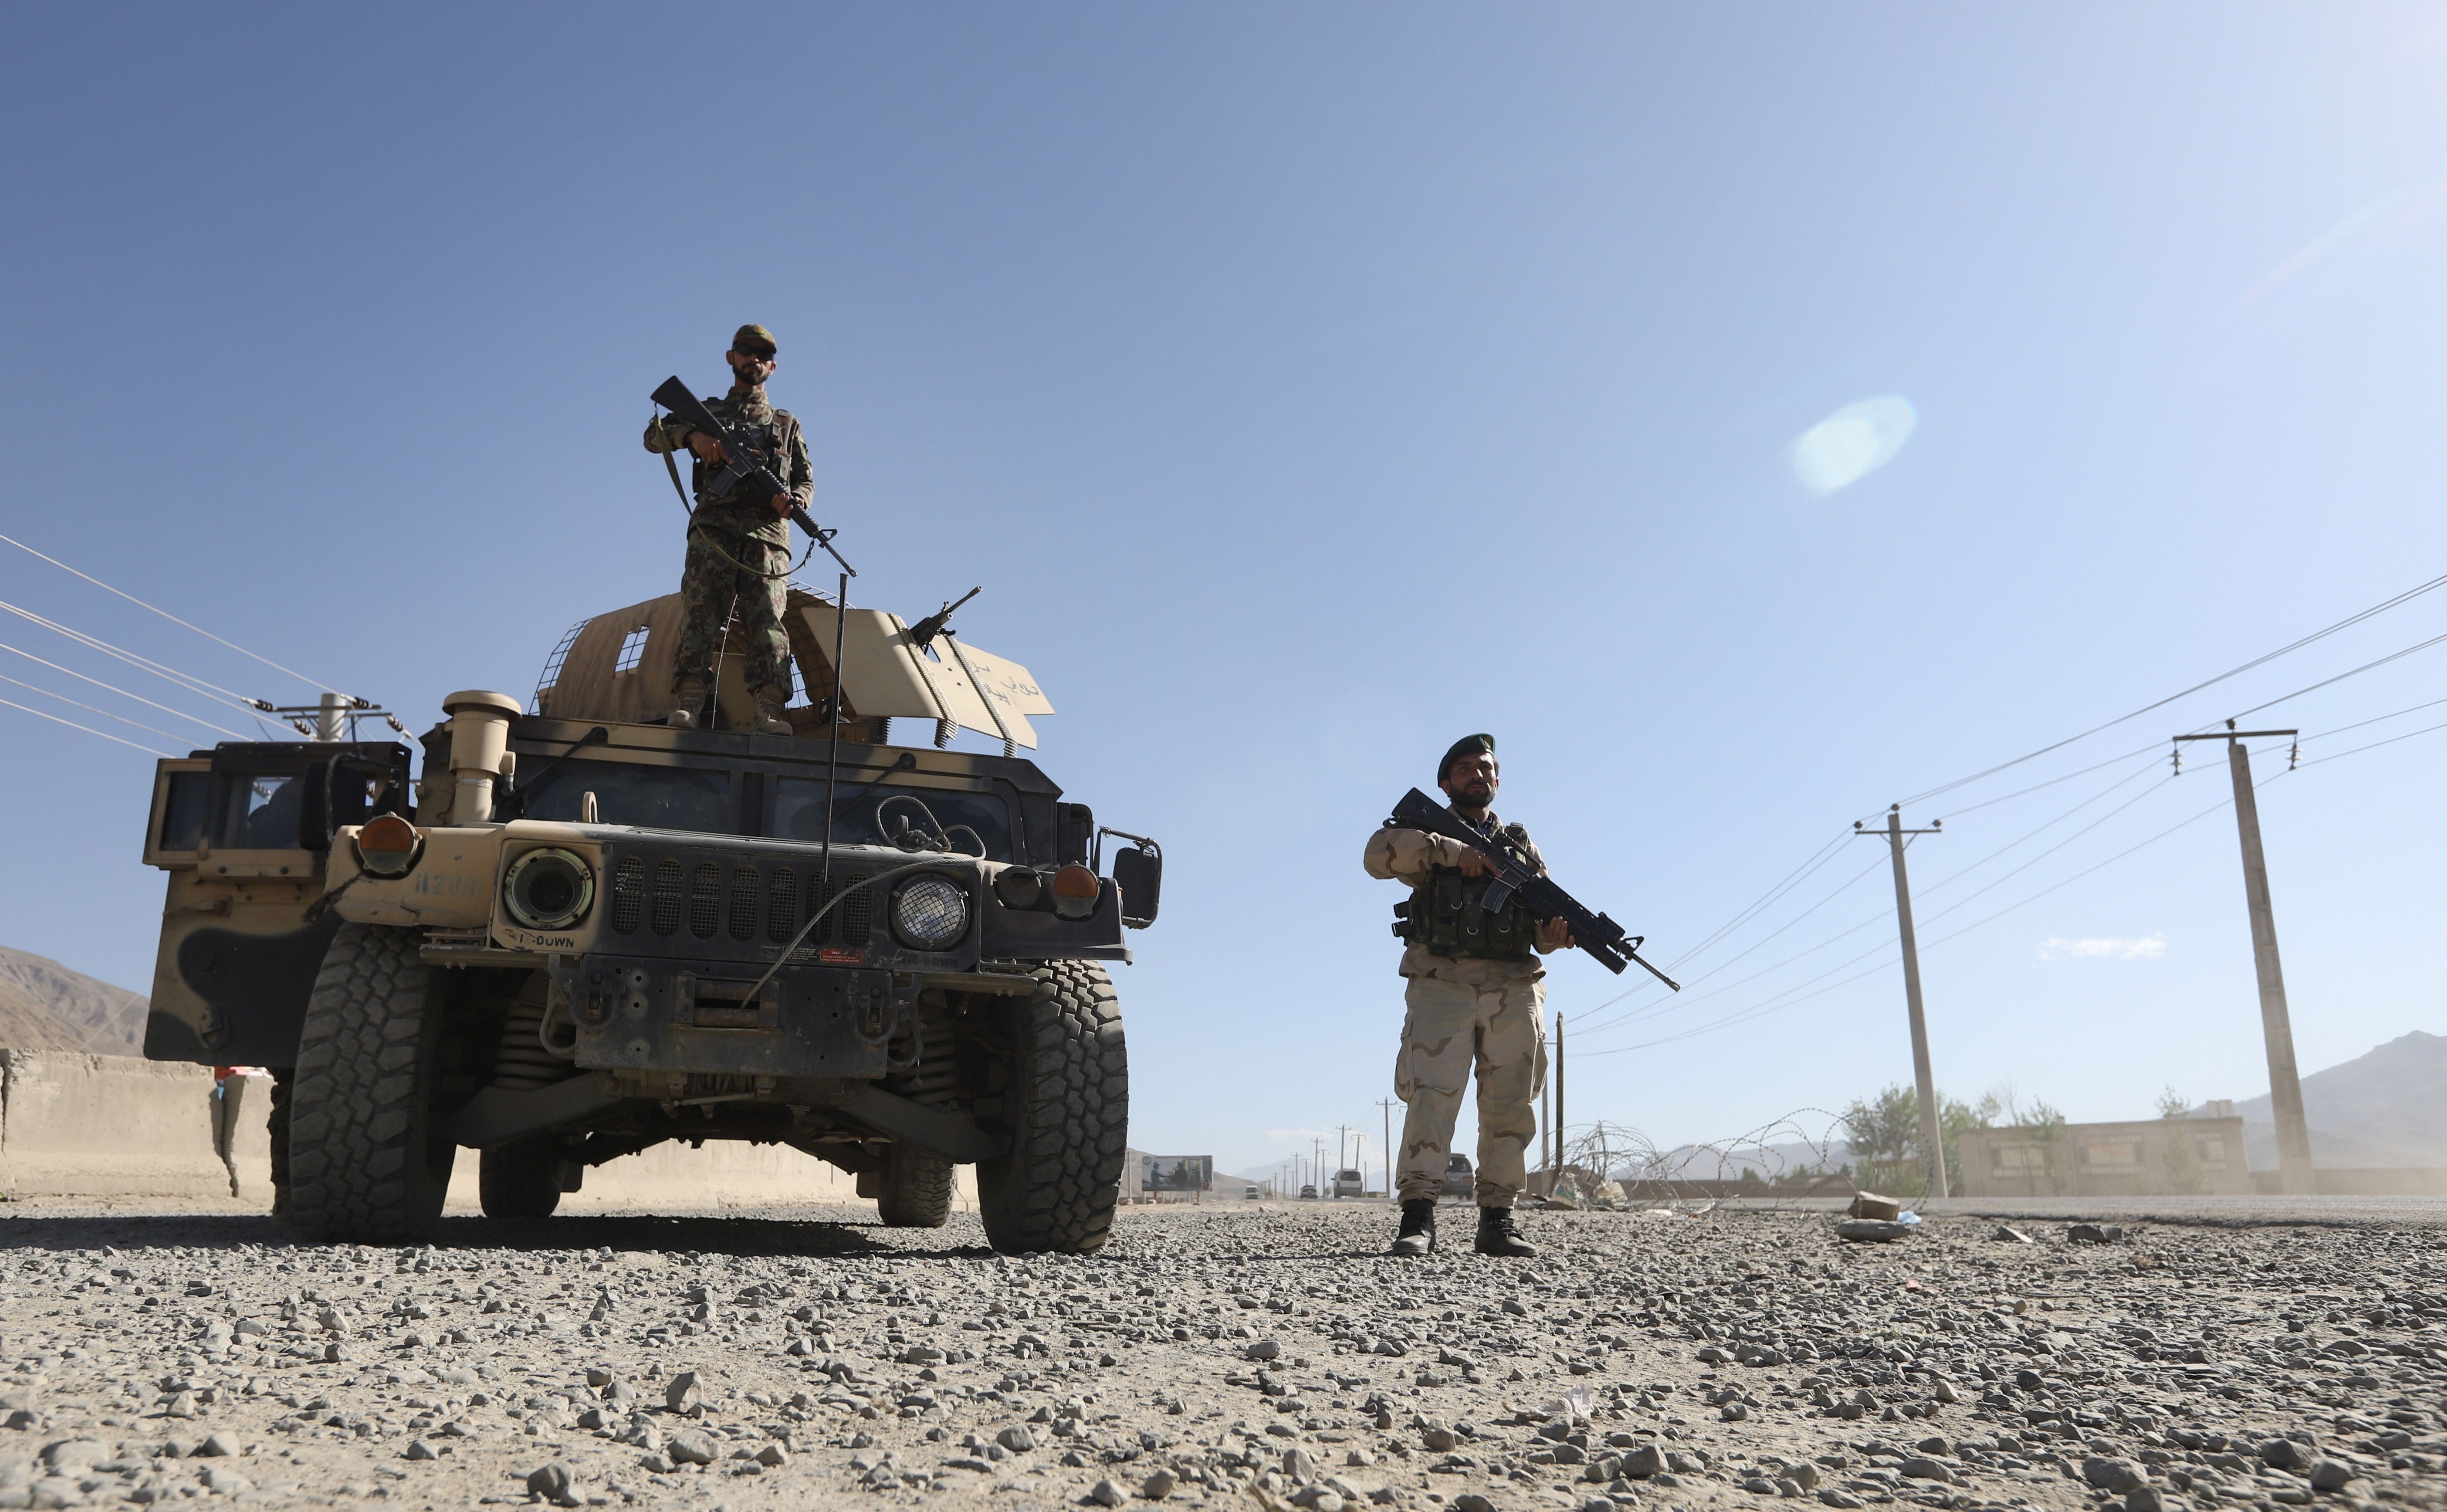 Insider attack kills US service member in Afghanistan